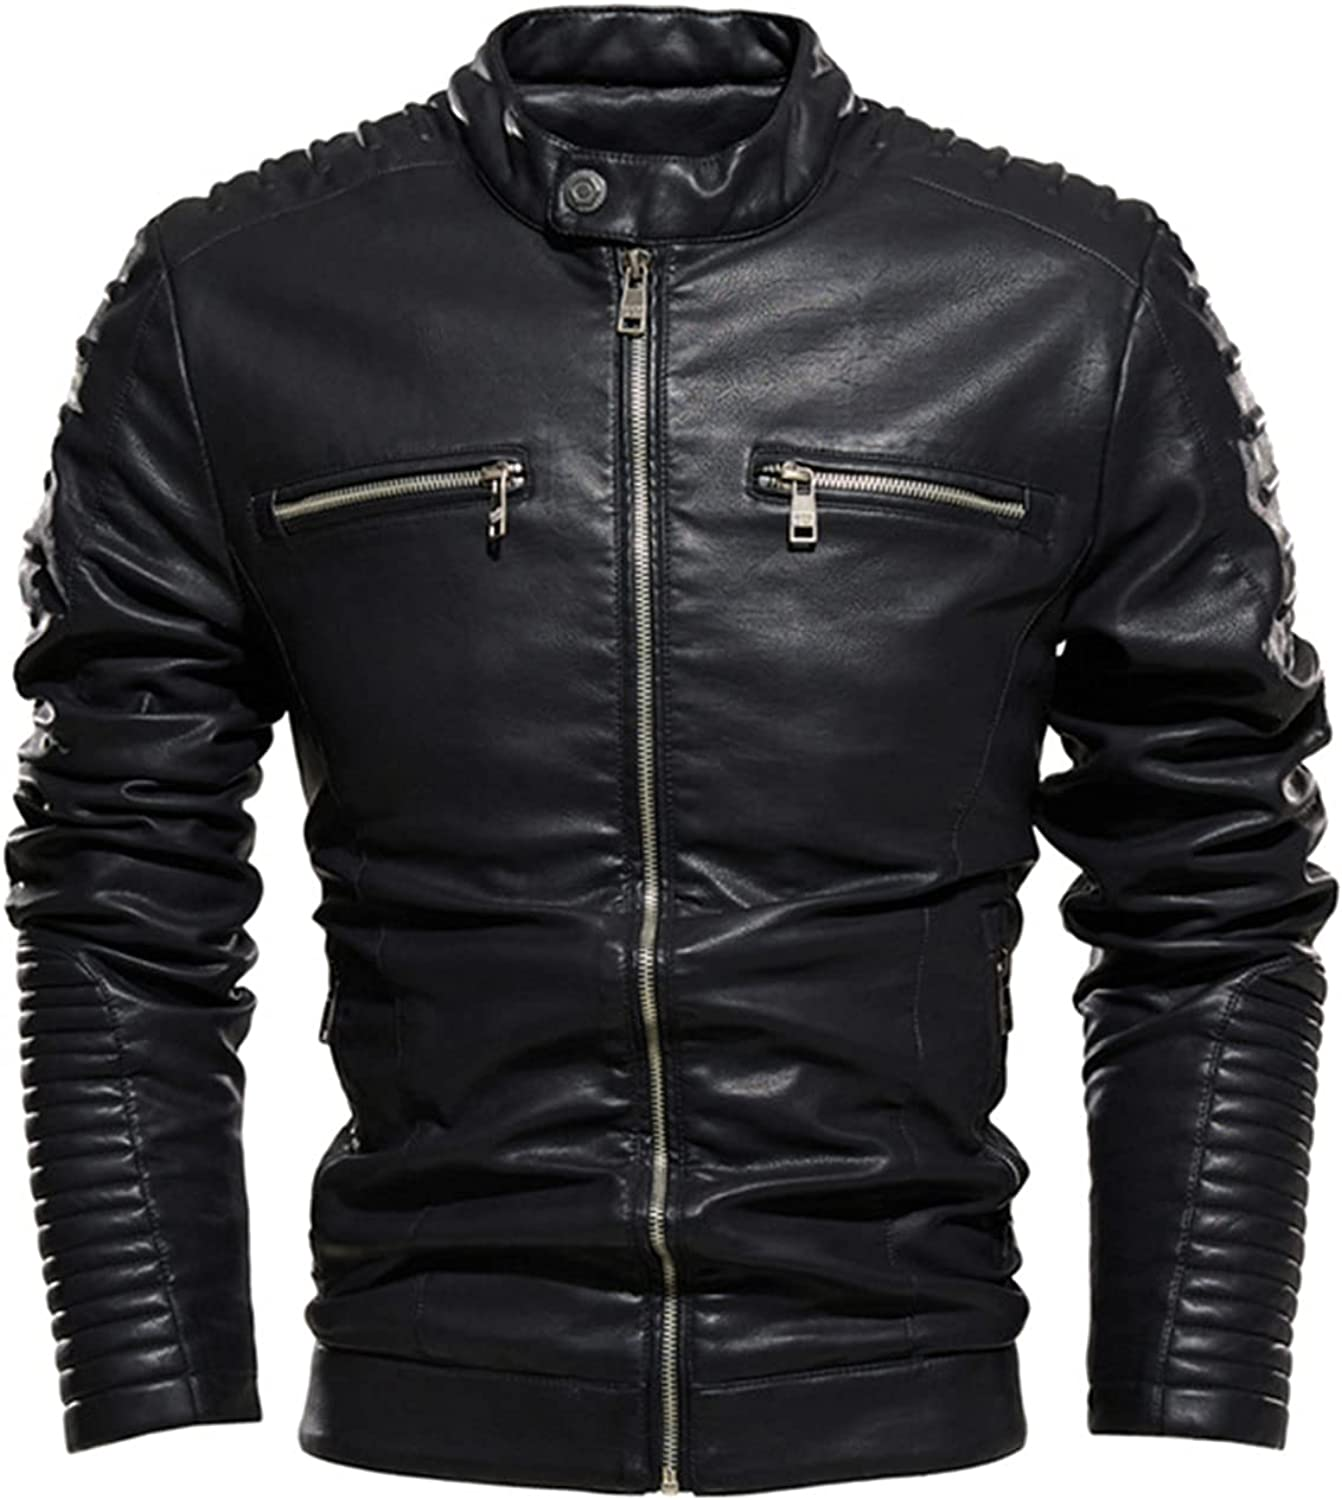 YUIJ Men's Casual Long Sleeve Faux Leather Coat,Slim-Fit Stand-Collar PU Jacket,for Outdoor Cycling, Racing, Etc.